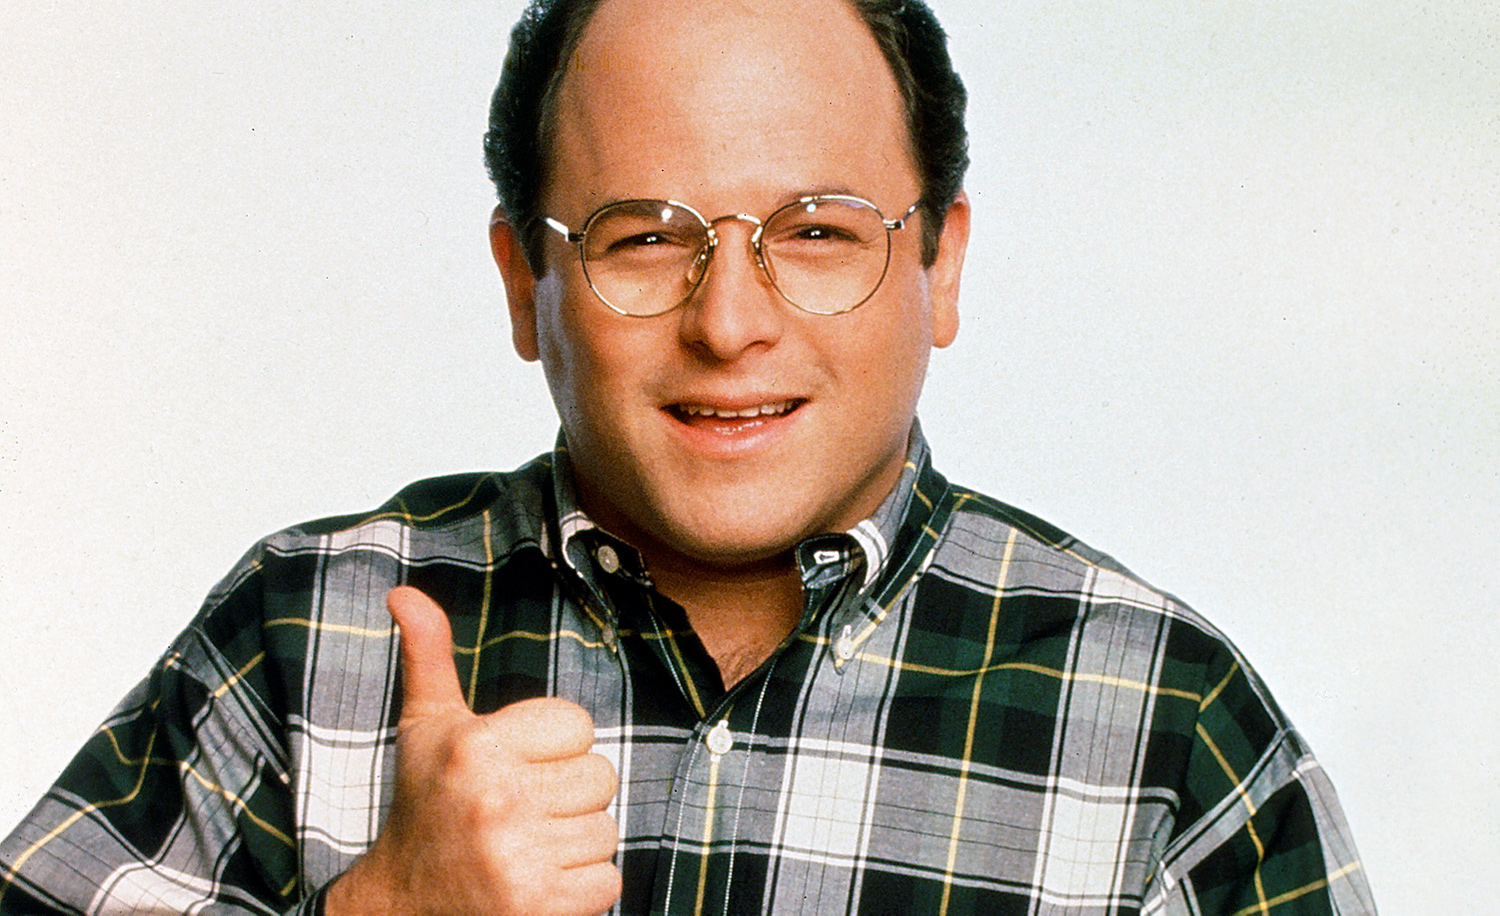 Jason Alexander as the Seinfeld character George Costanza. Andrew Eccles/NBCU Photo Bank/NBCUniversal via Getty Images.